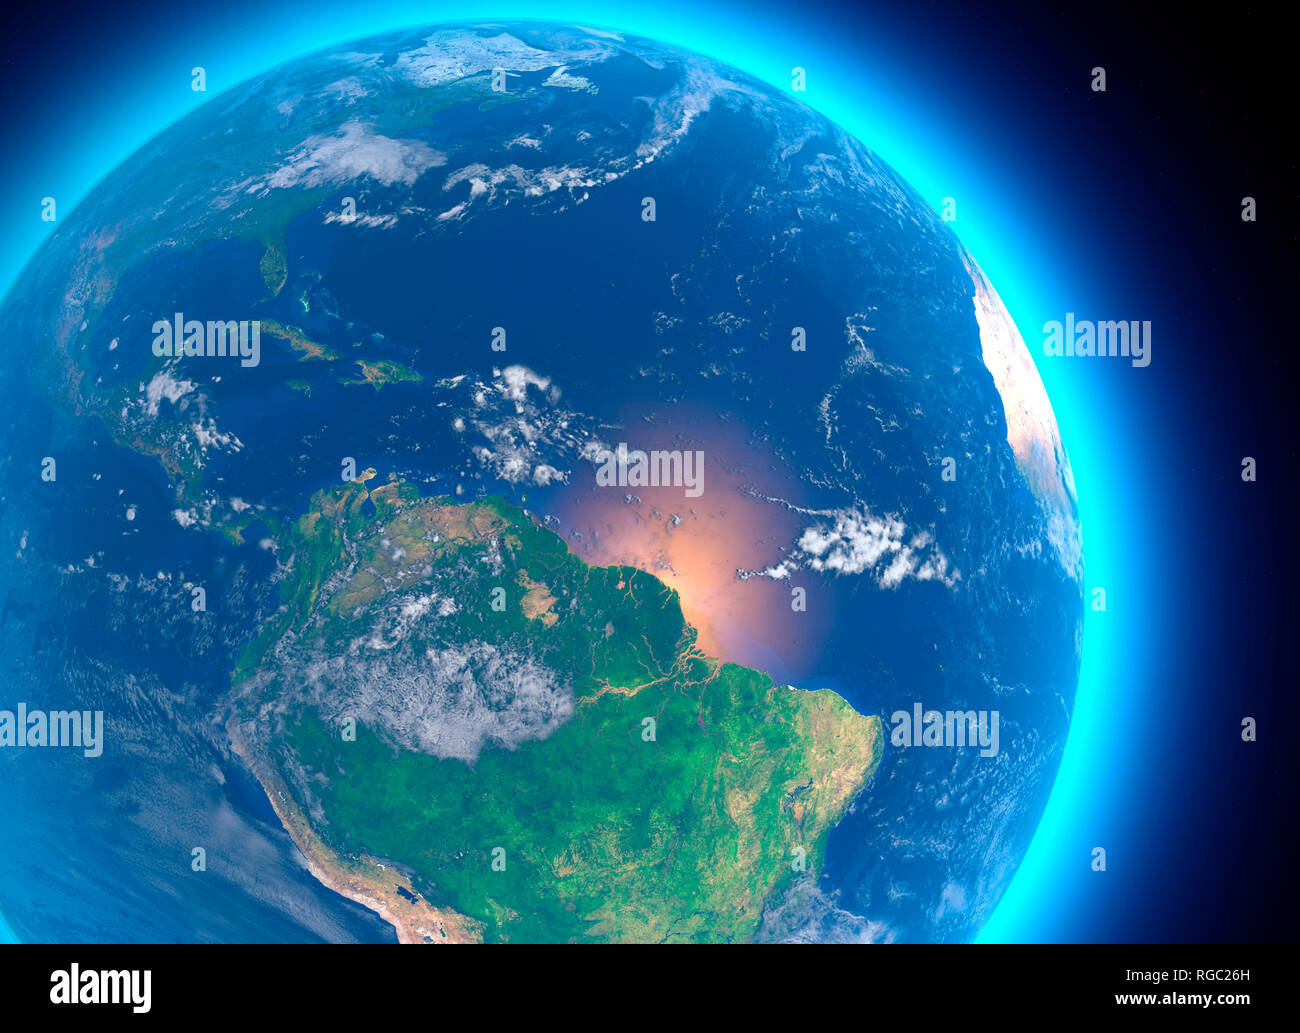 Satellite view of the Amazon, map, states of South America ... on nasa earth real-time, cia satellite map, sports satellite map, world earth globe map, planet earth world map, sir francis drake route world map, microsoft satellite map, atlantic water vapor map, asia satellite map, live satellite world map, california satellite map, aqua satellite map, animals satellite map, chemtrail satellite map, mars satellite map, high resolution satellite world map, new york state satellite map, nasa asia, nasa earth maps, google satellite map,